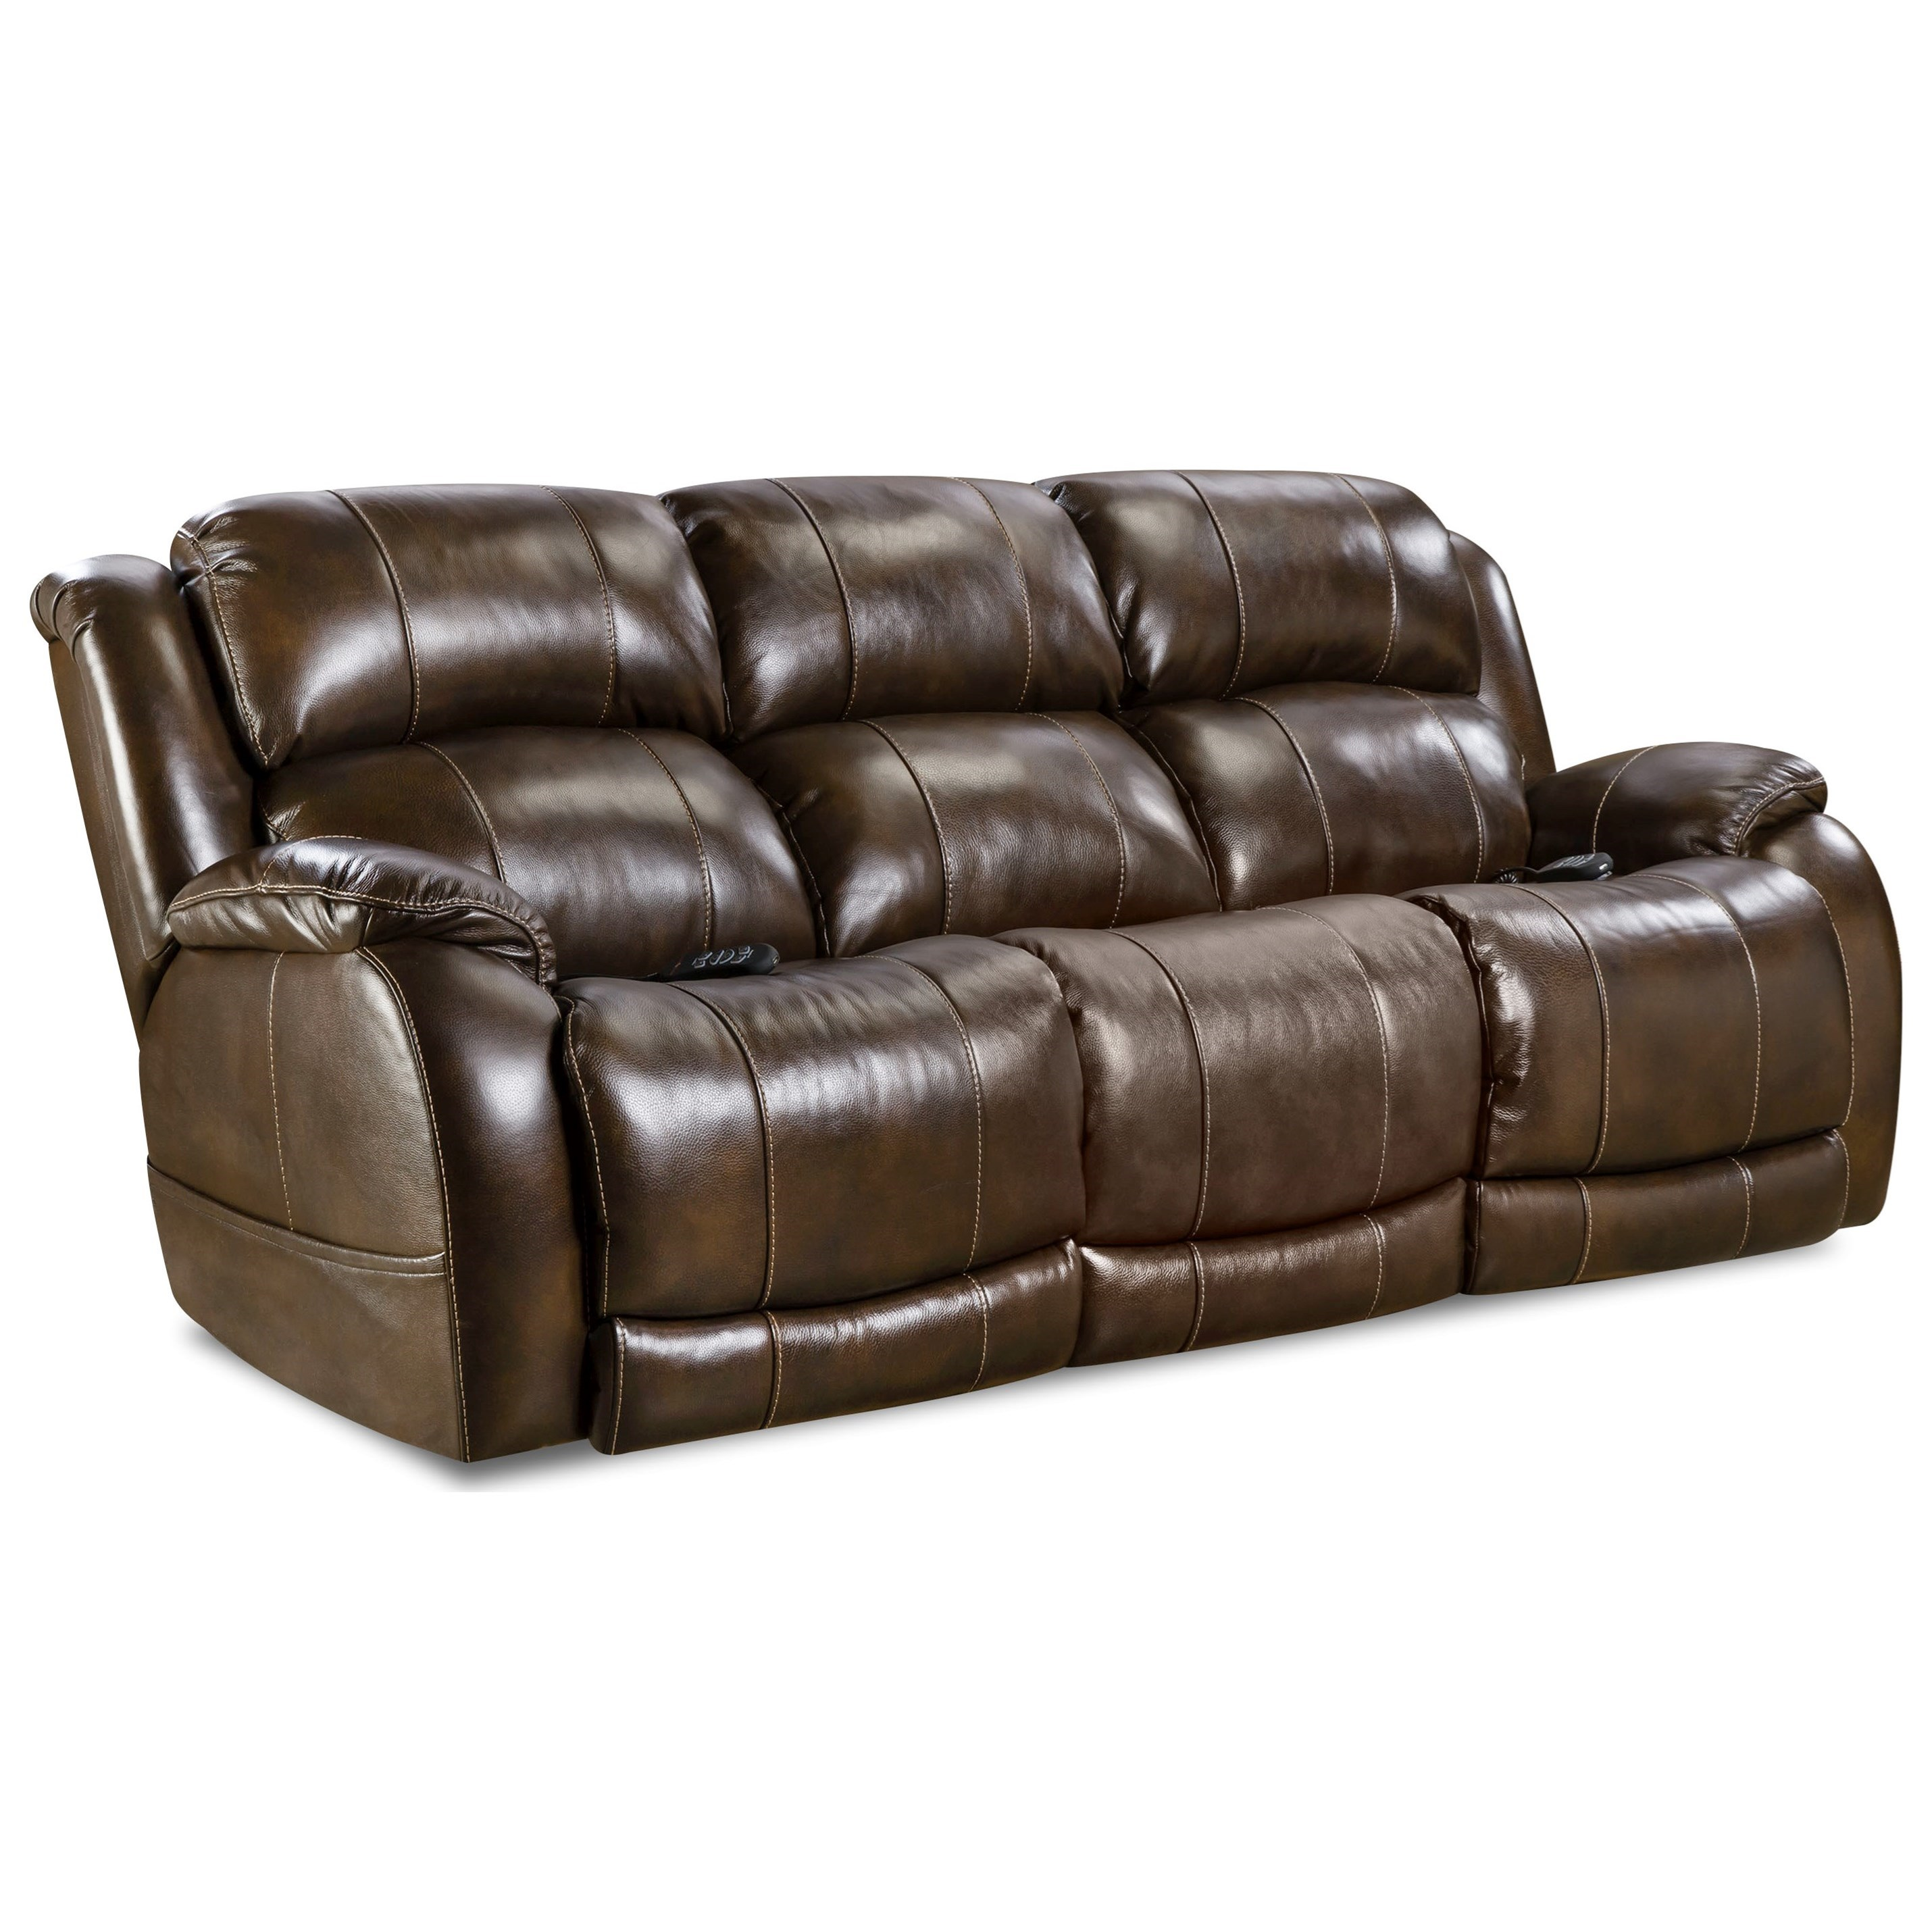 170 Collection Double Reclining Power Sofa by HomeStretch at Suburban Furniture